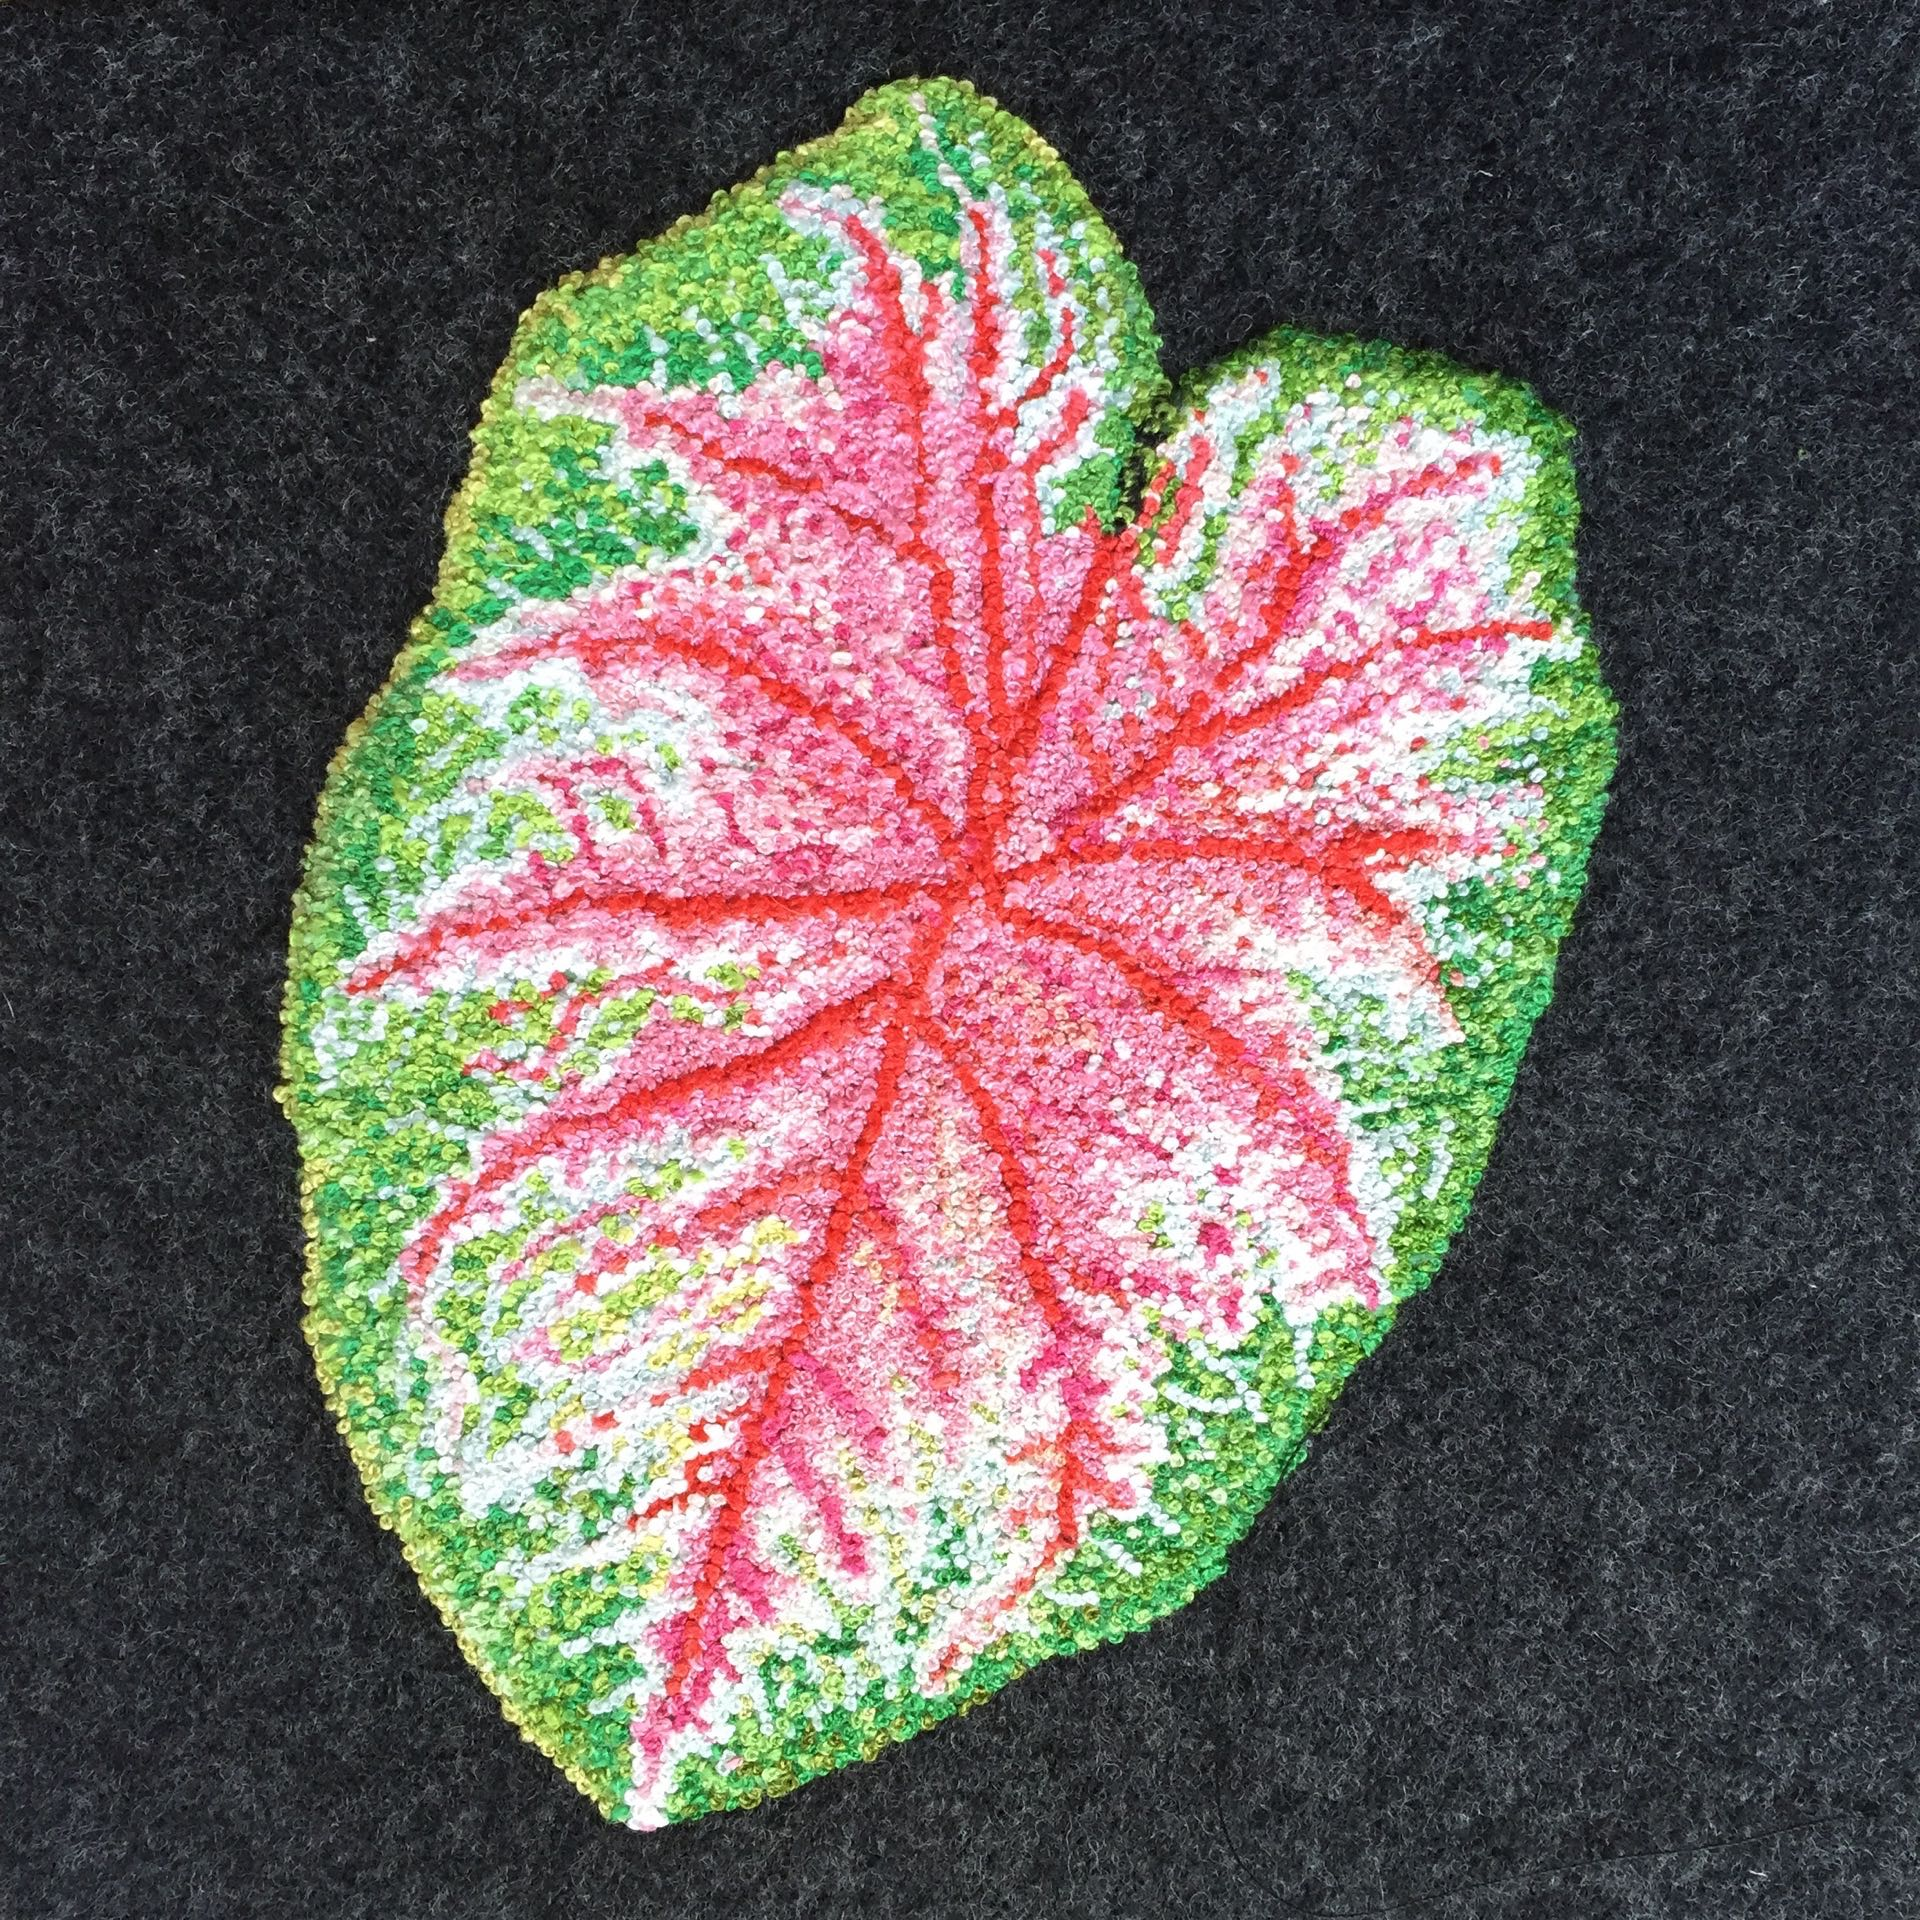 """Caladium , 2015, embroidery floss french knots on wool fabric, 6"""" x 6"""", by Teresa Shields"""